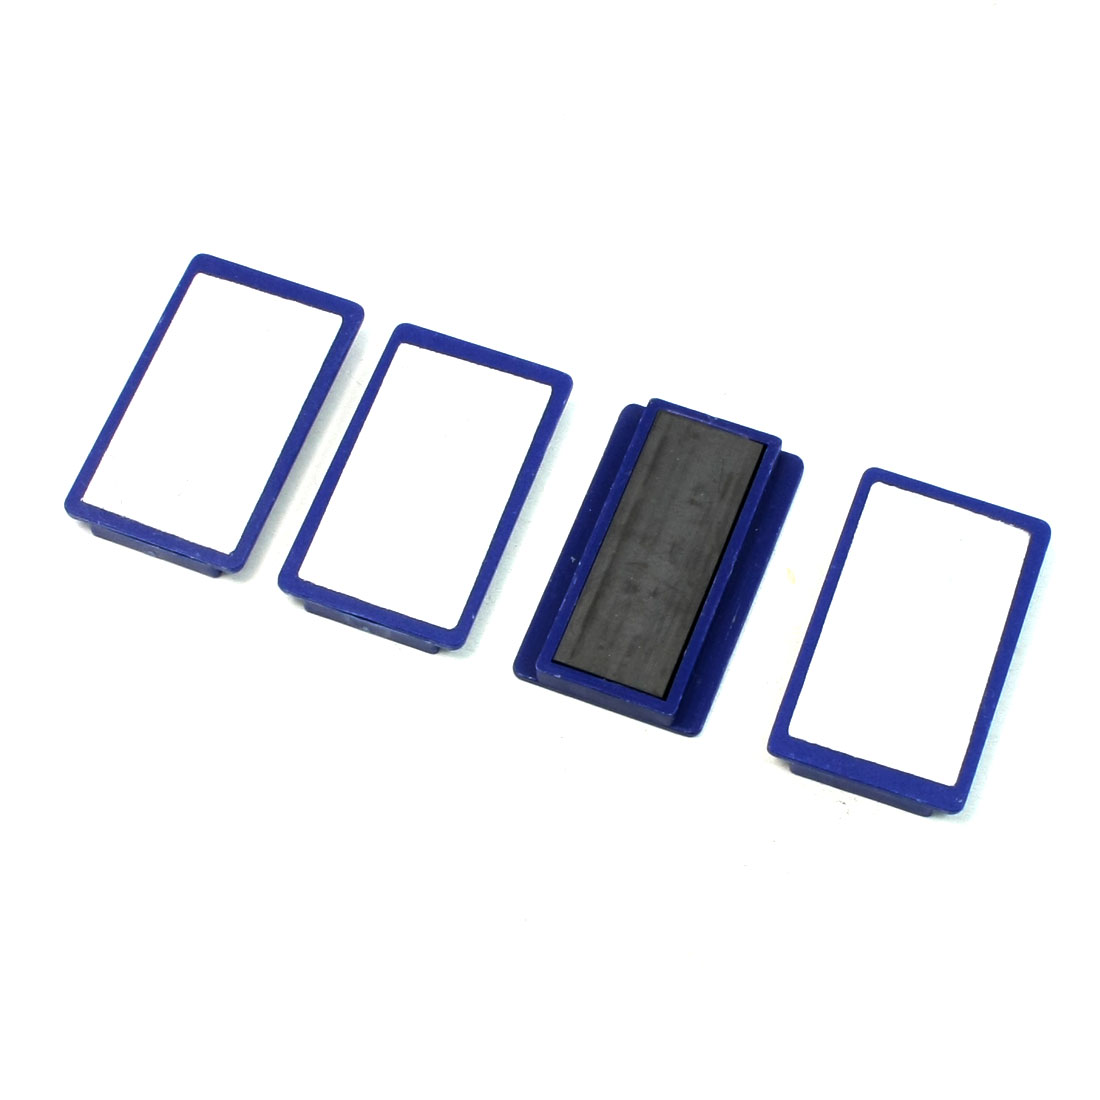 School Whiteboard Rectangle Magnetic Stripes Fixed File Tool Blue 4 Pcs